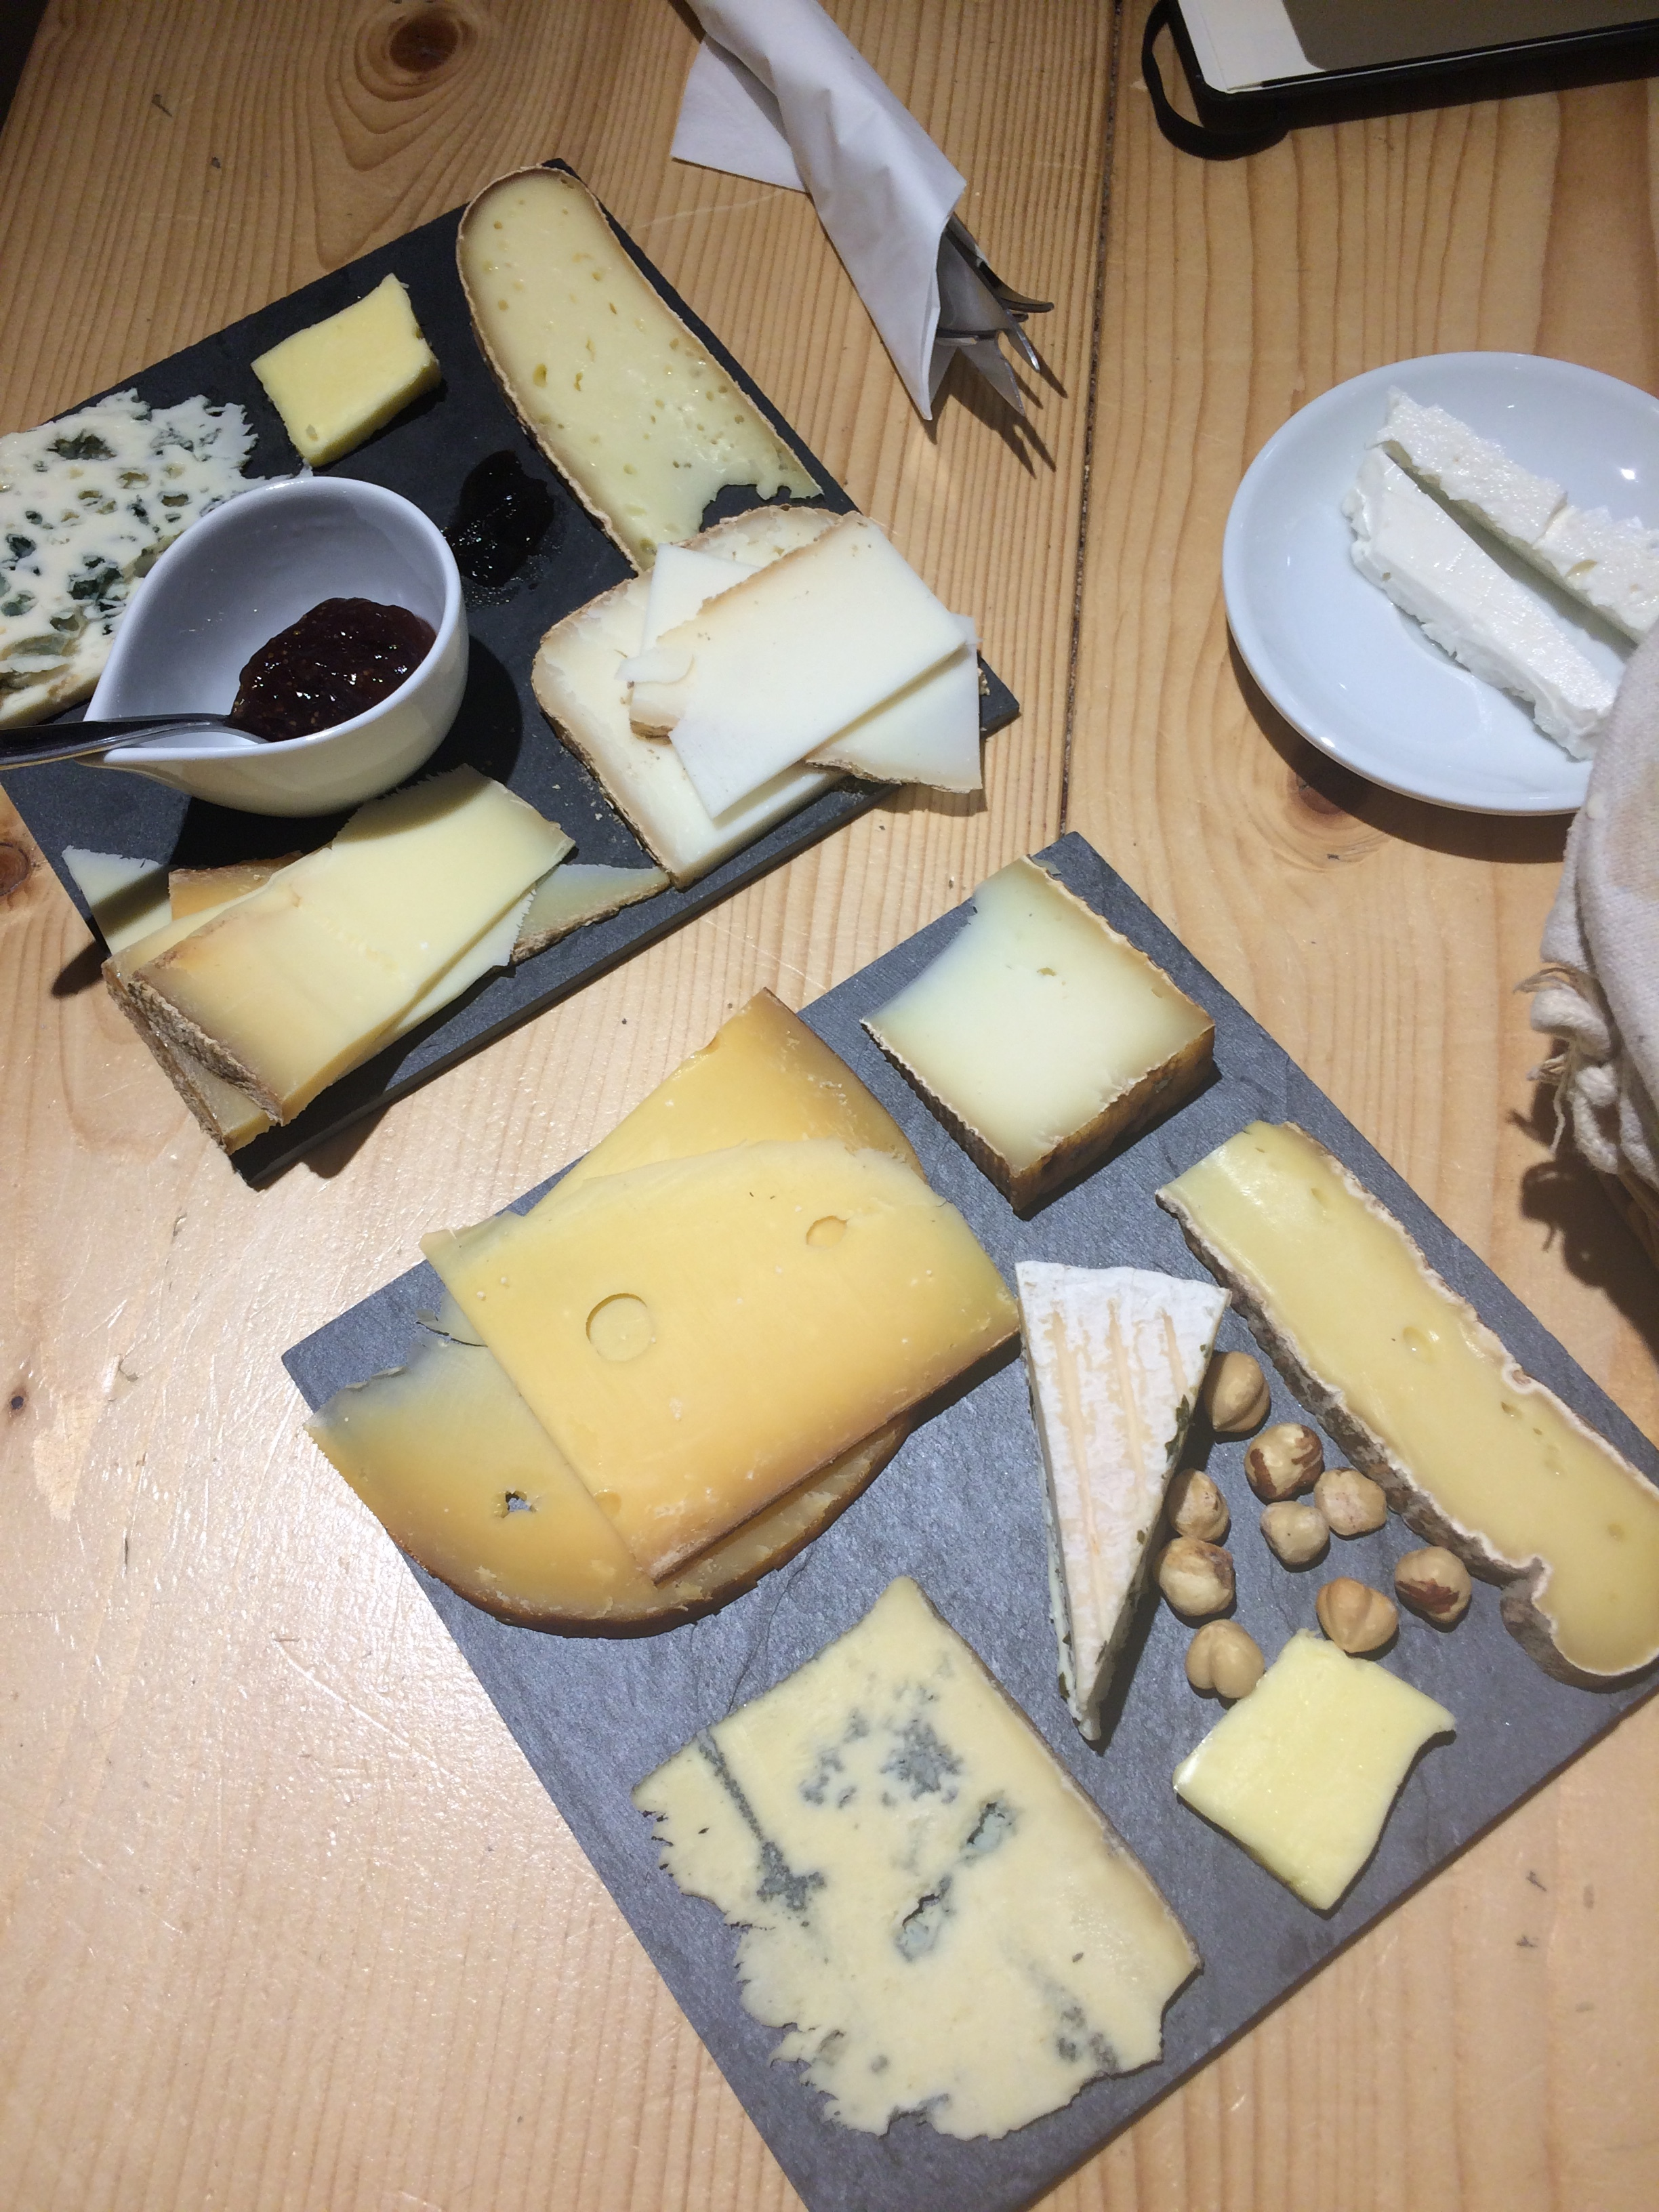 Cheese tasting with 10 cheeses, fig jam, french butter and hazelnuts, baguette and wine! Yum.